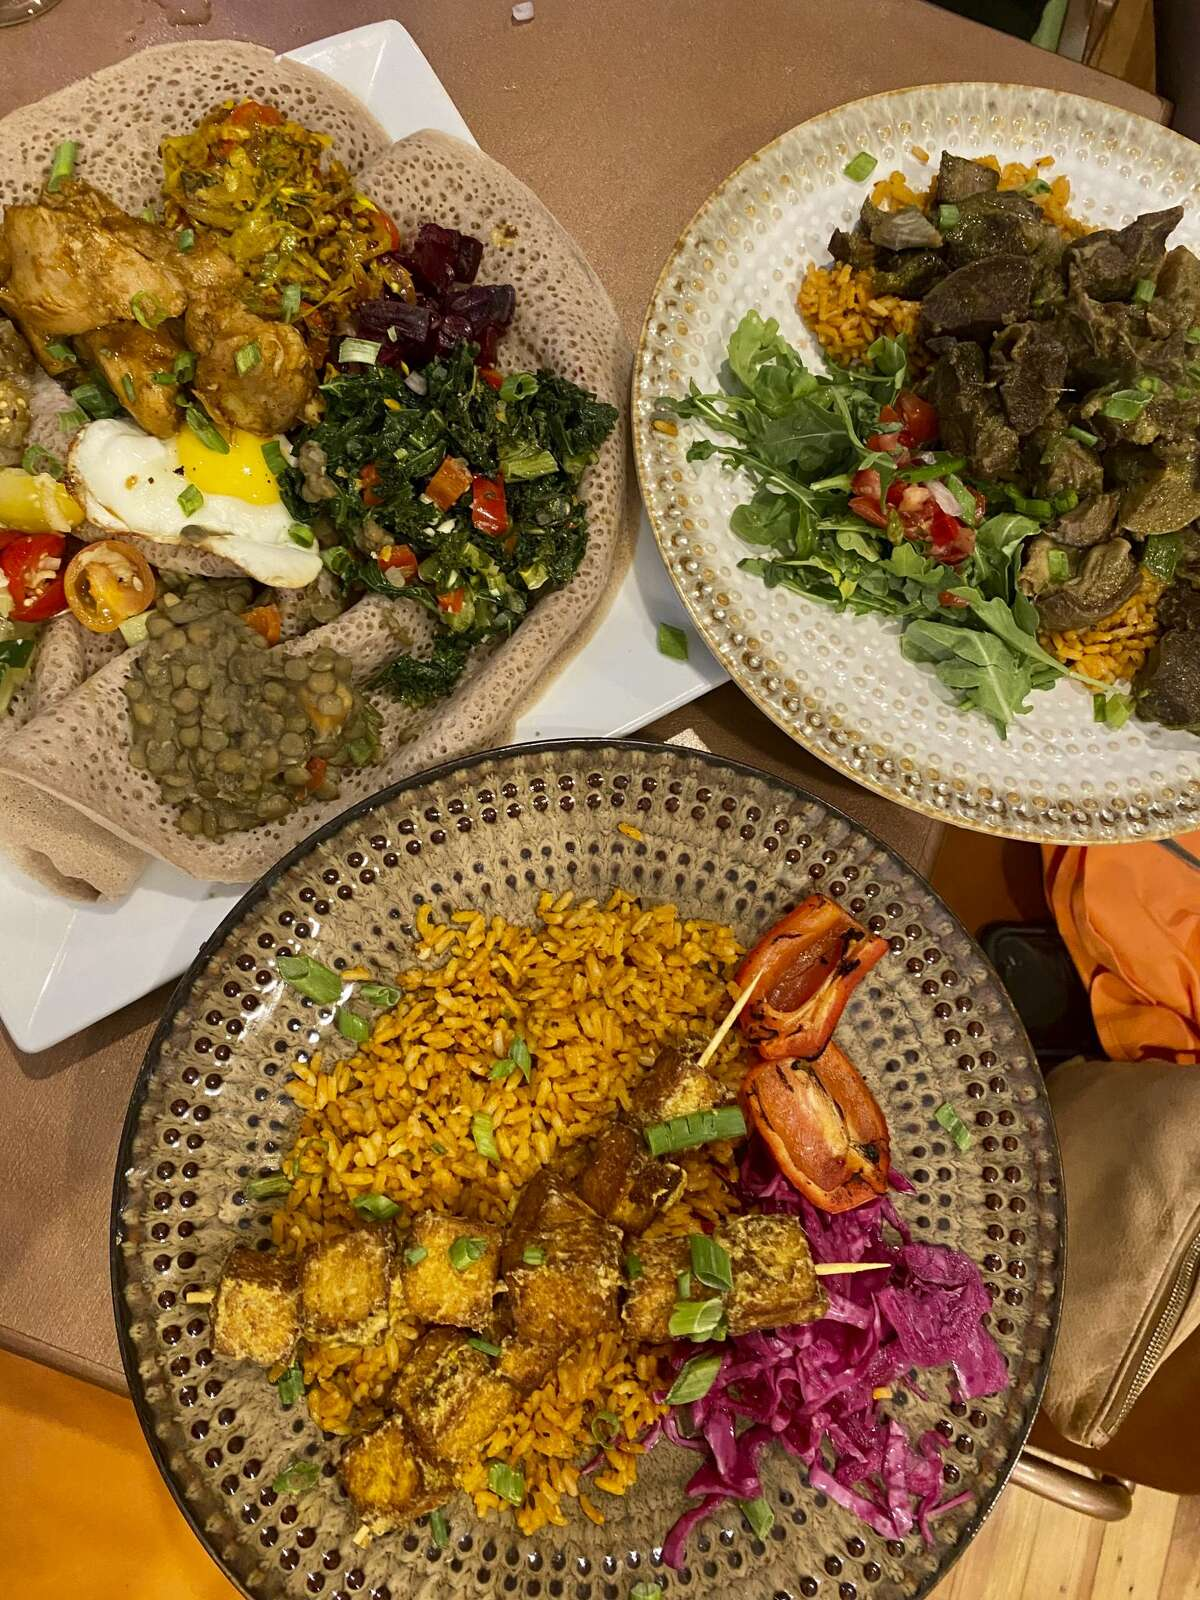 Kaleidoscopic plates of Afro Caribbean-inspired street food are a signature offering at Umana Yana, a newly reopened Albany restaurant.(Susie Davidson Powell/For the Times Union)